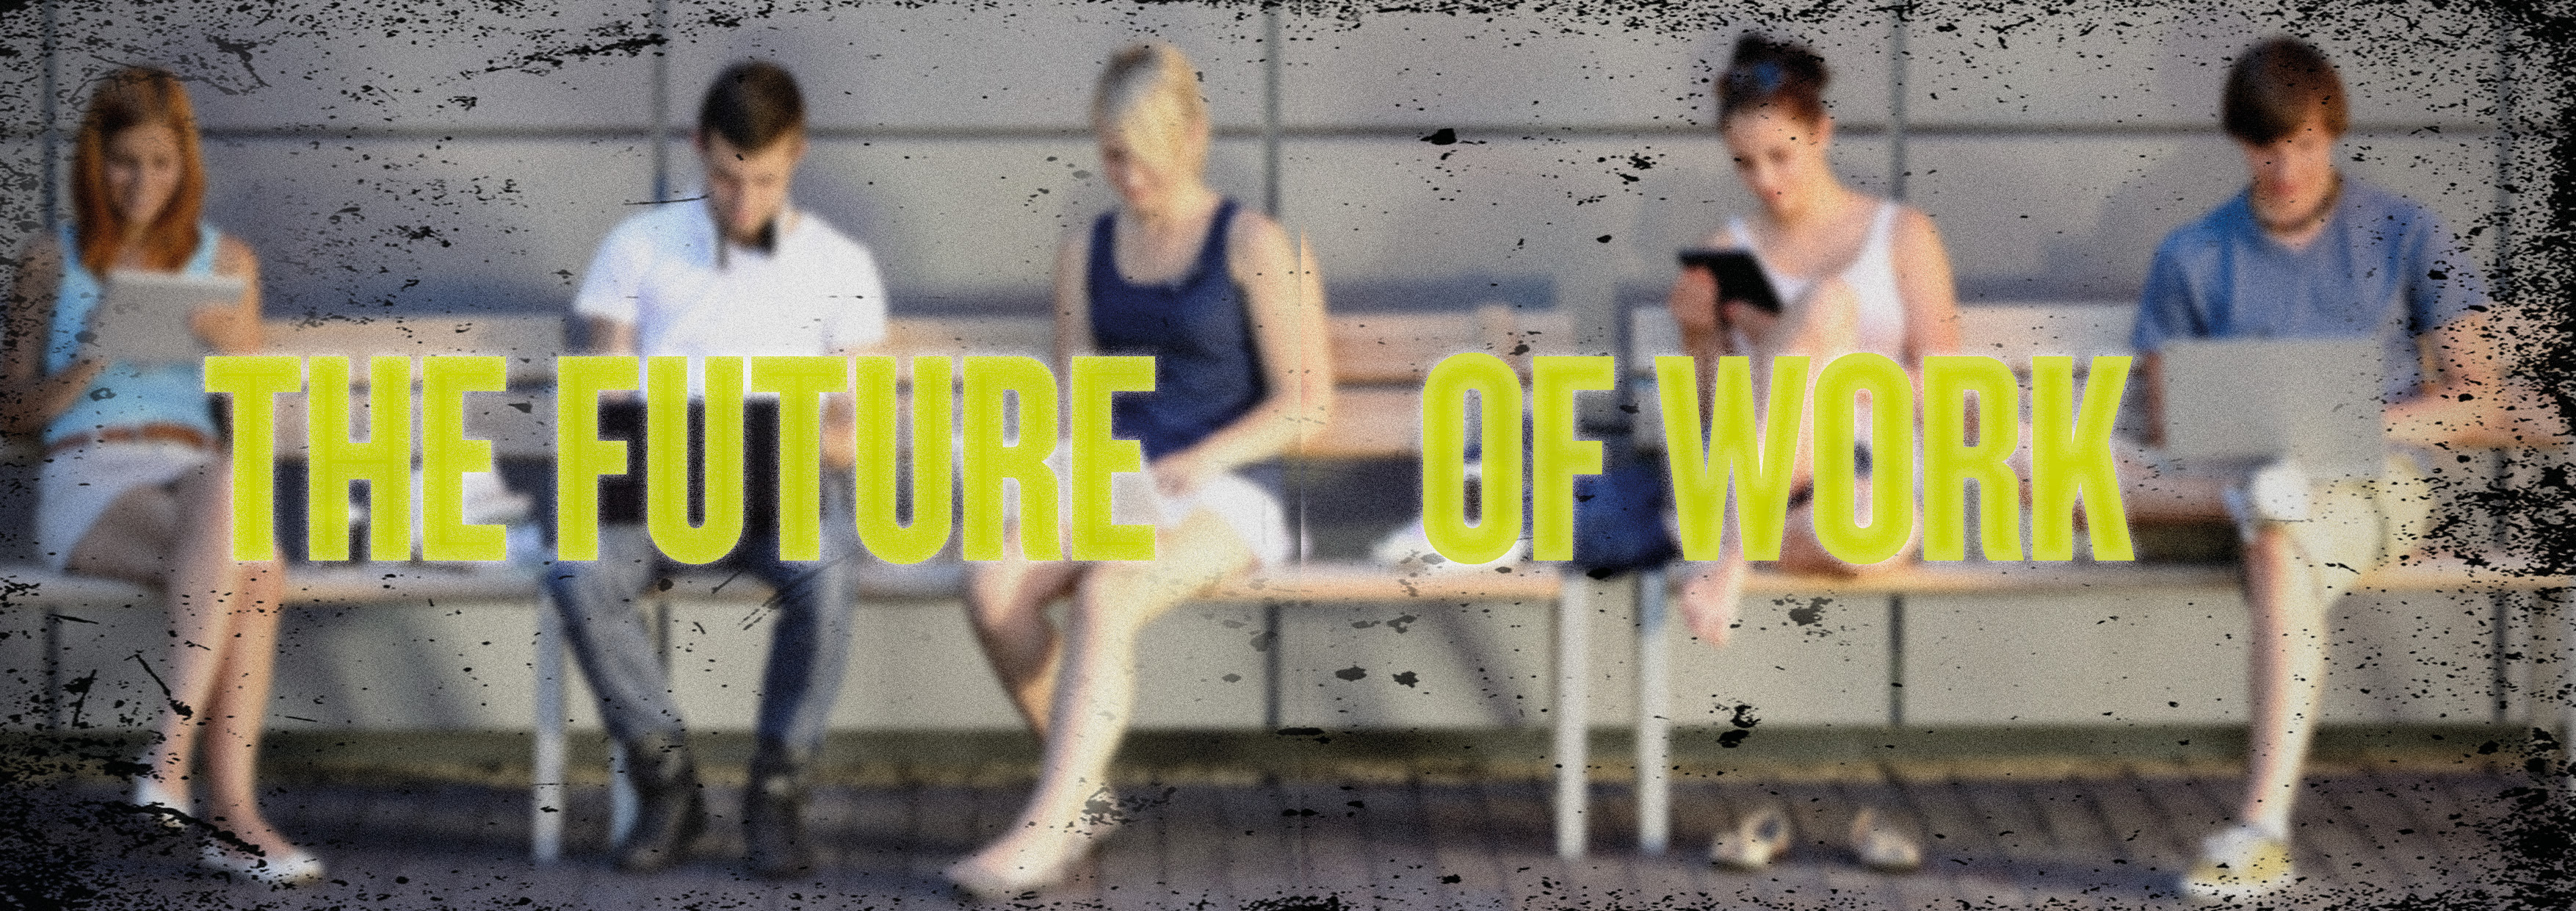 The Future of Work SprPg 2